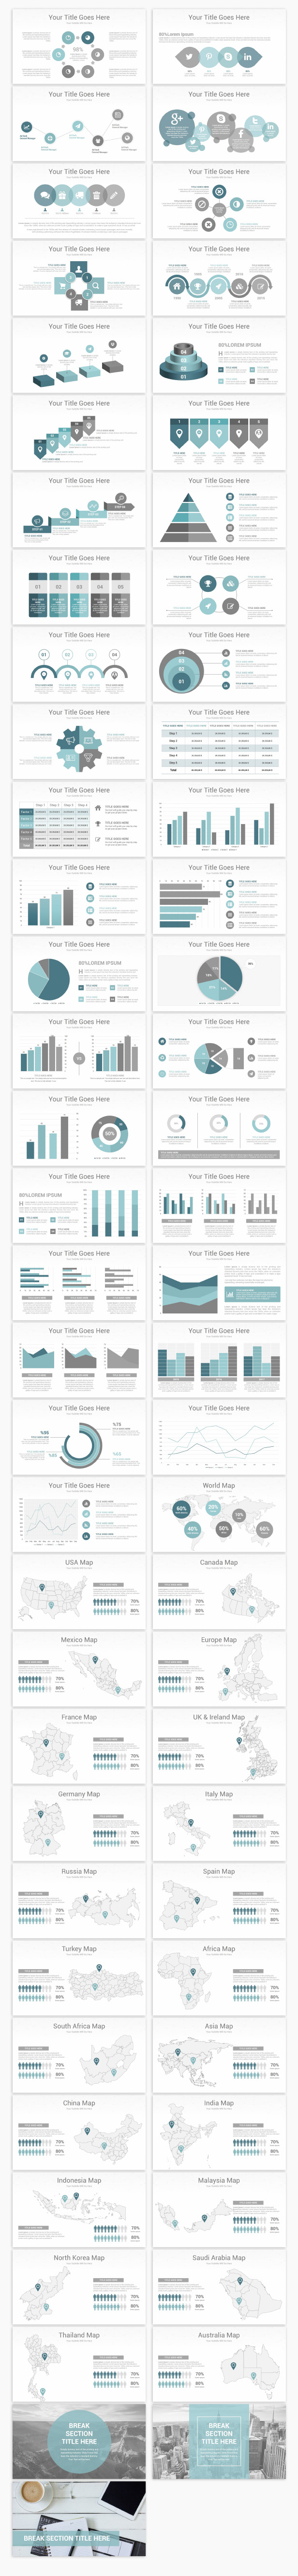 Pro Business PowerPoint Presentation Template - 2